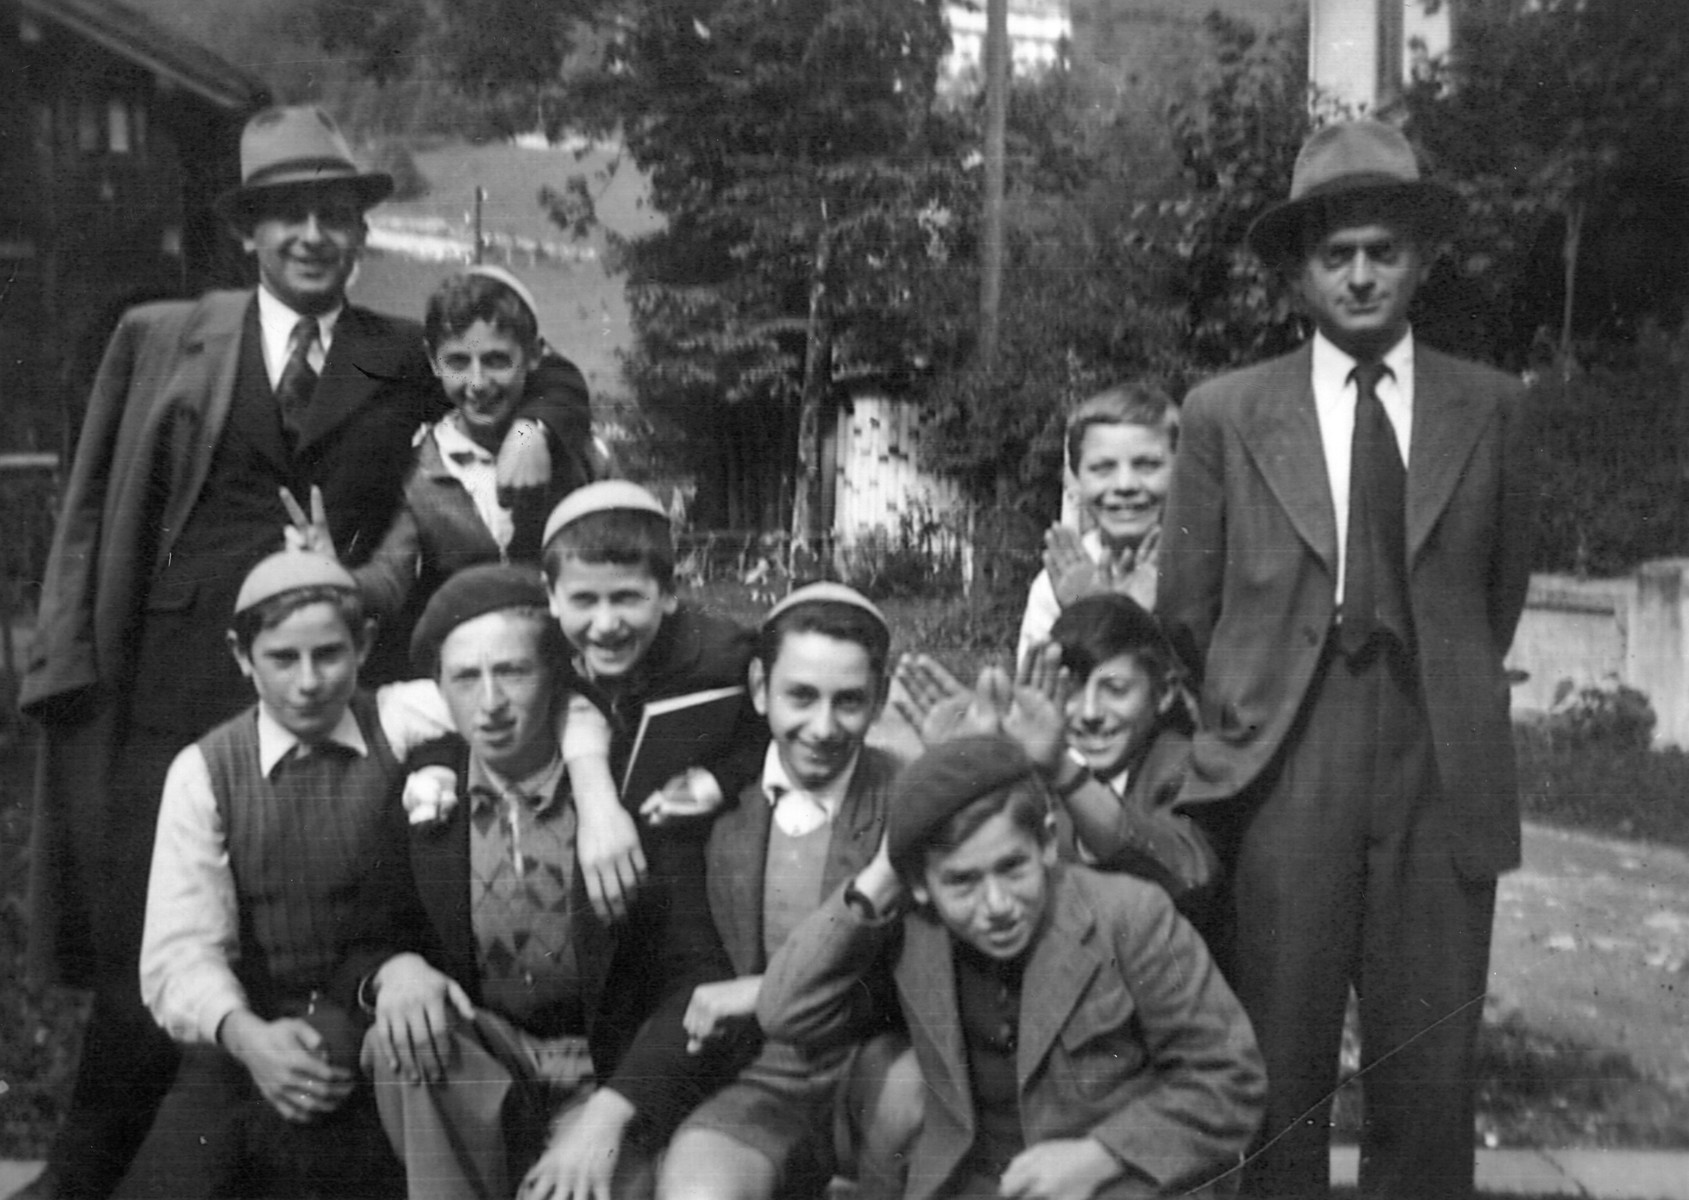 Group portrait of boys and teachers at the Orthodox Zionist Alijah Heim in Engelberg, Switzerland.   Among those pictured is Heinz Menachem Mayer.